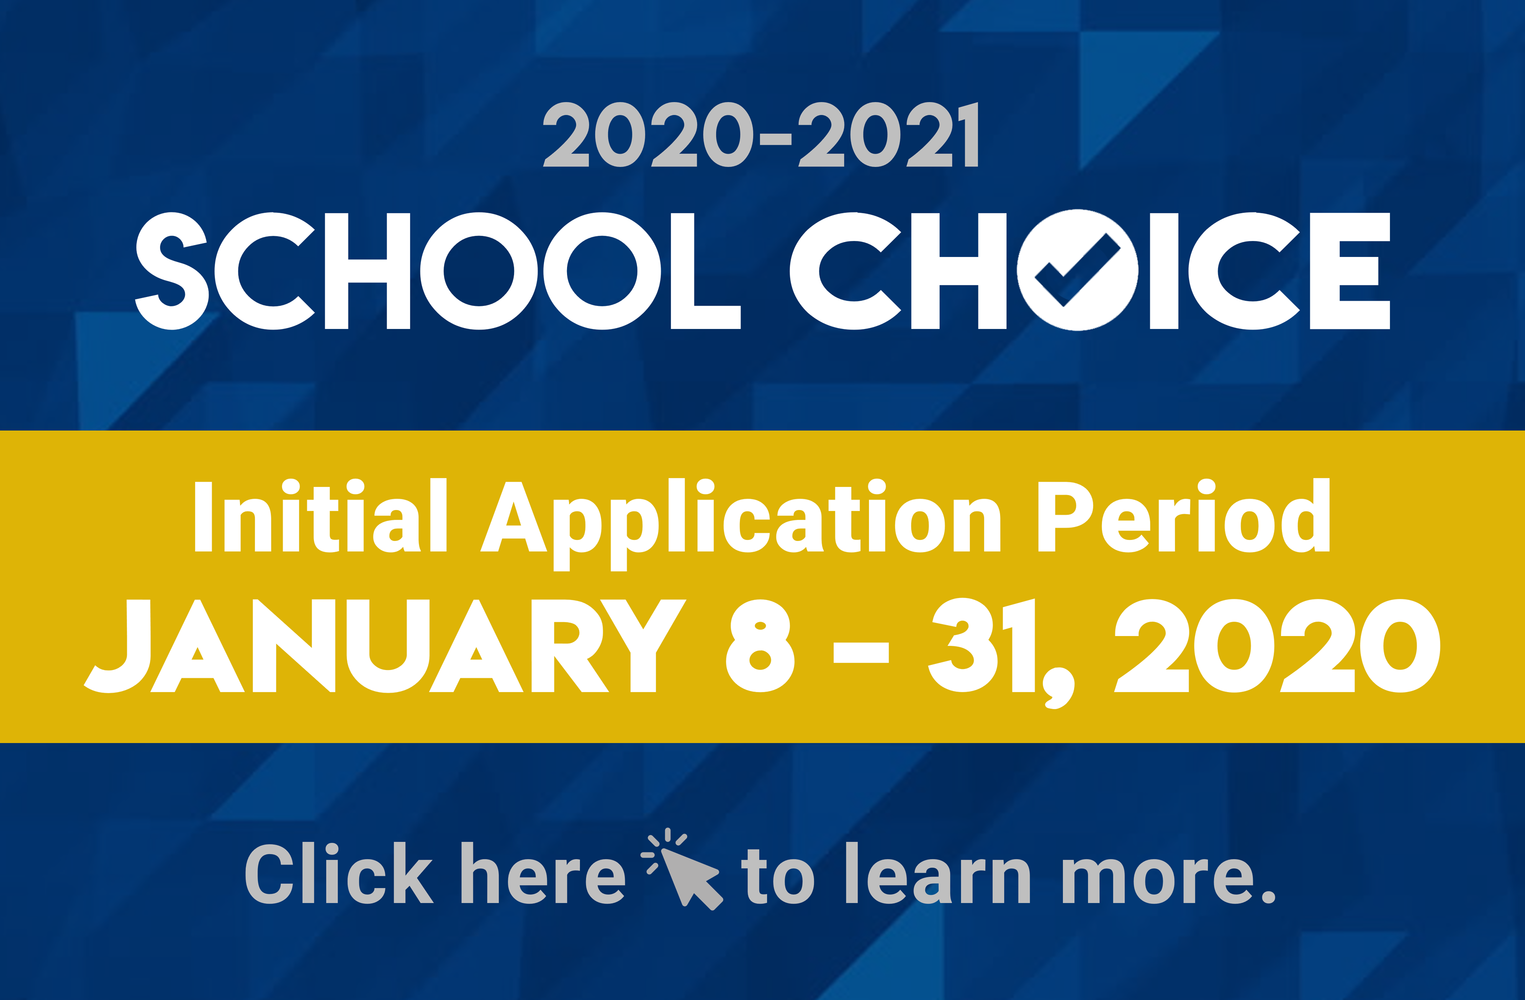 School Choice banner with information regarding PYLUSD application.